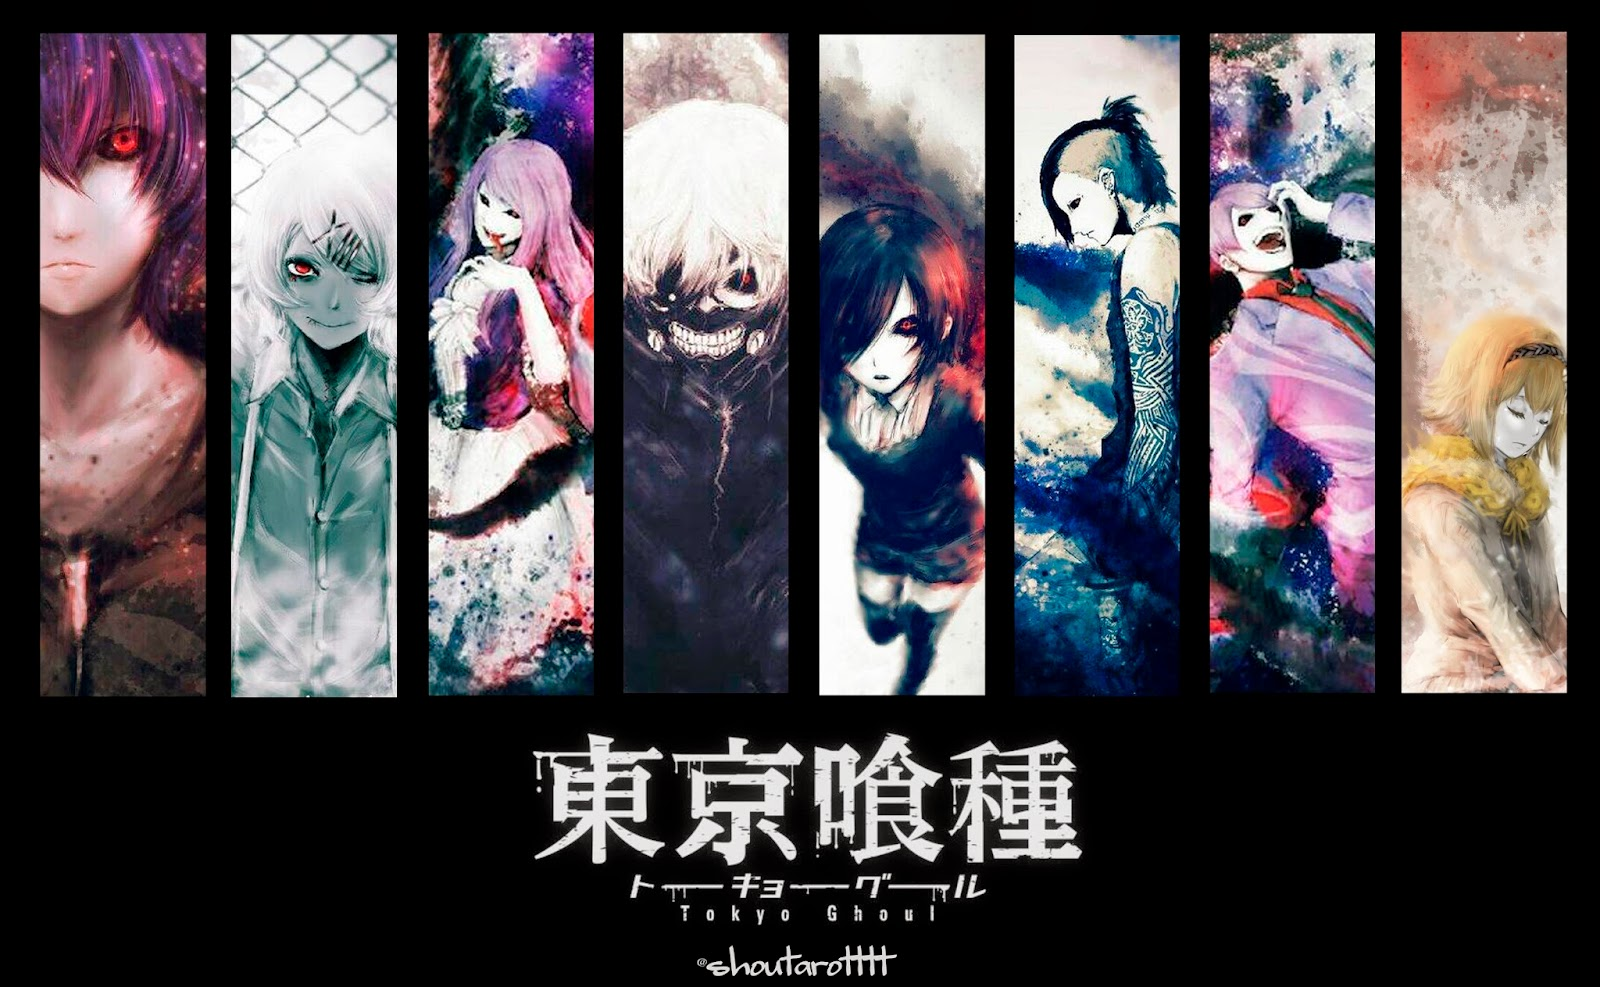 Tokyo ghoul ova jack sub indo hentia queen